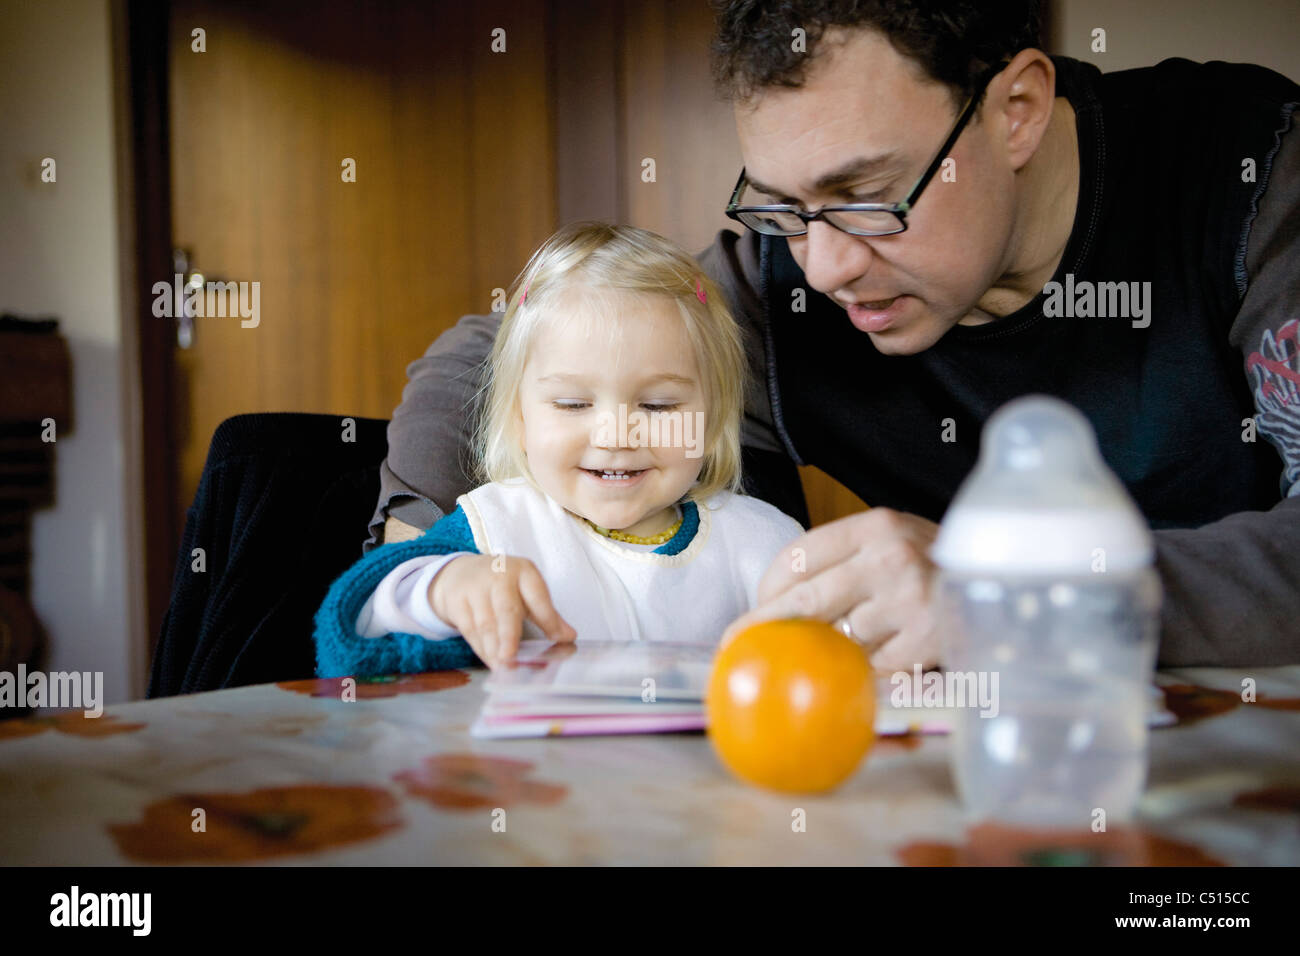 Father reading story to baby girl - Stock Image